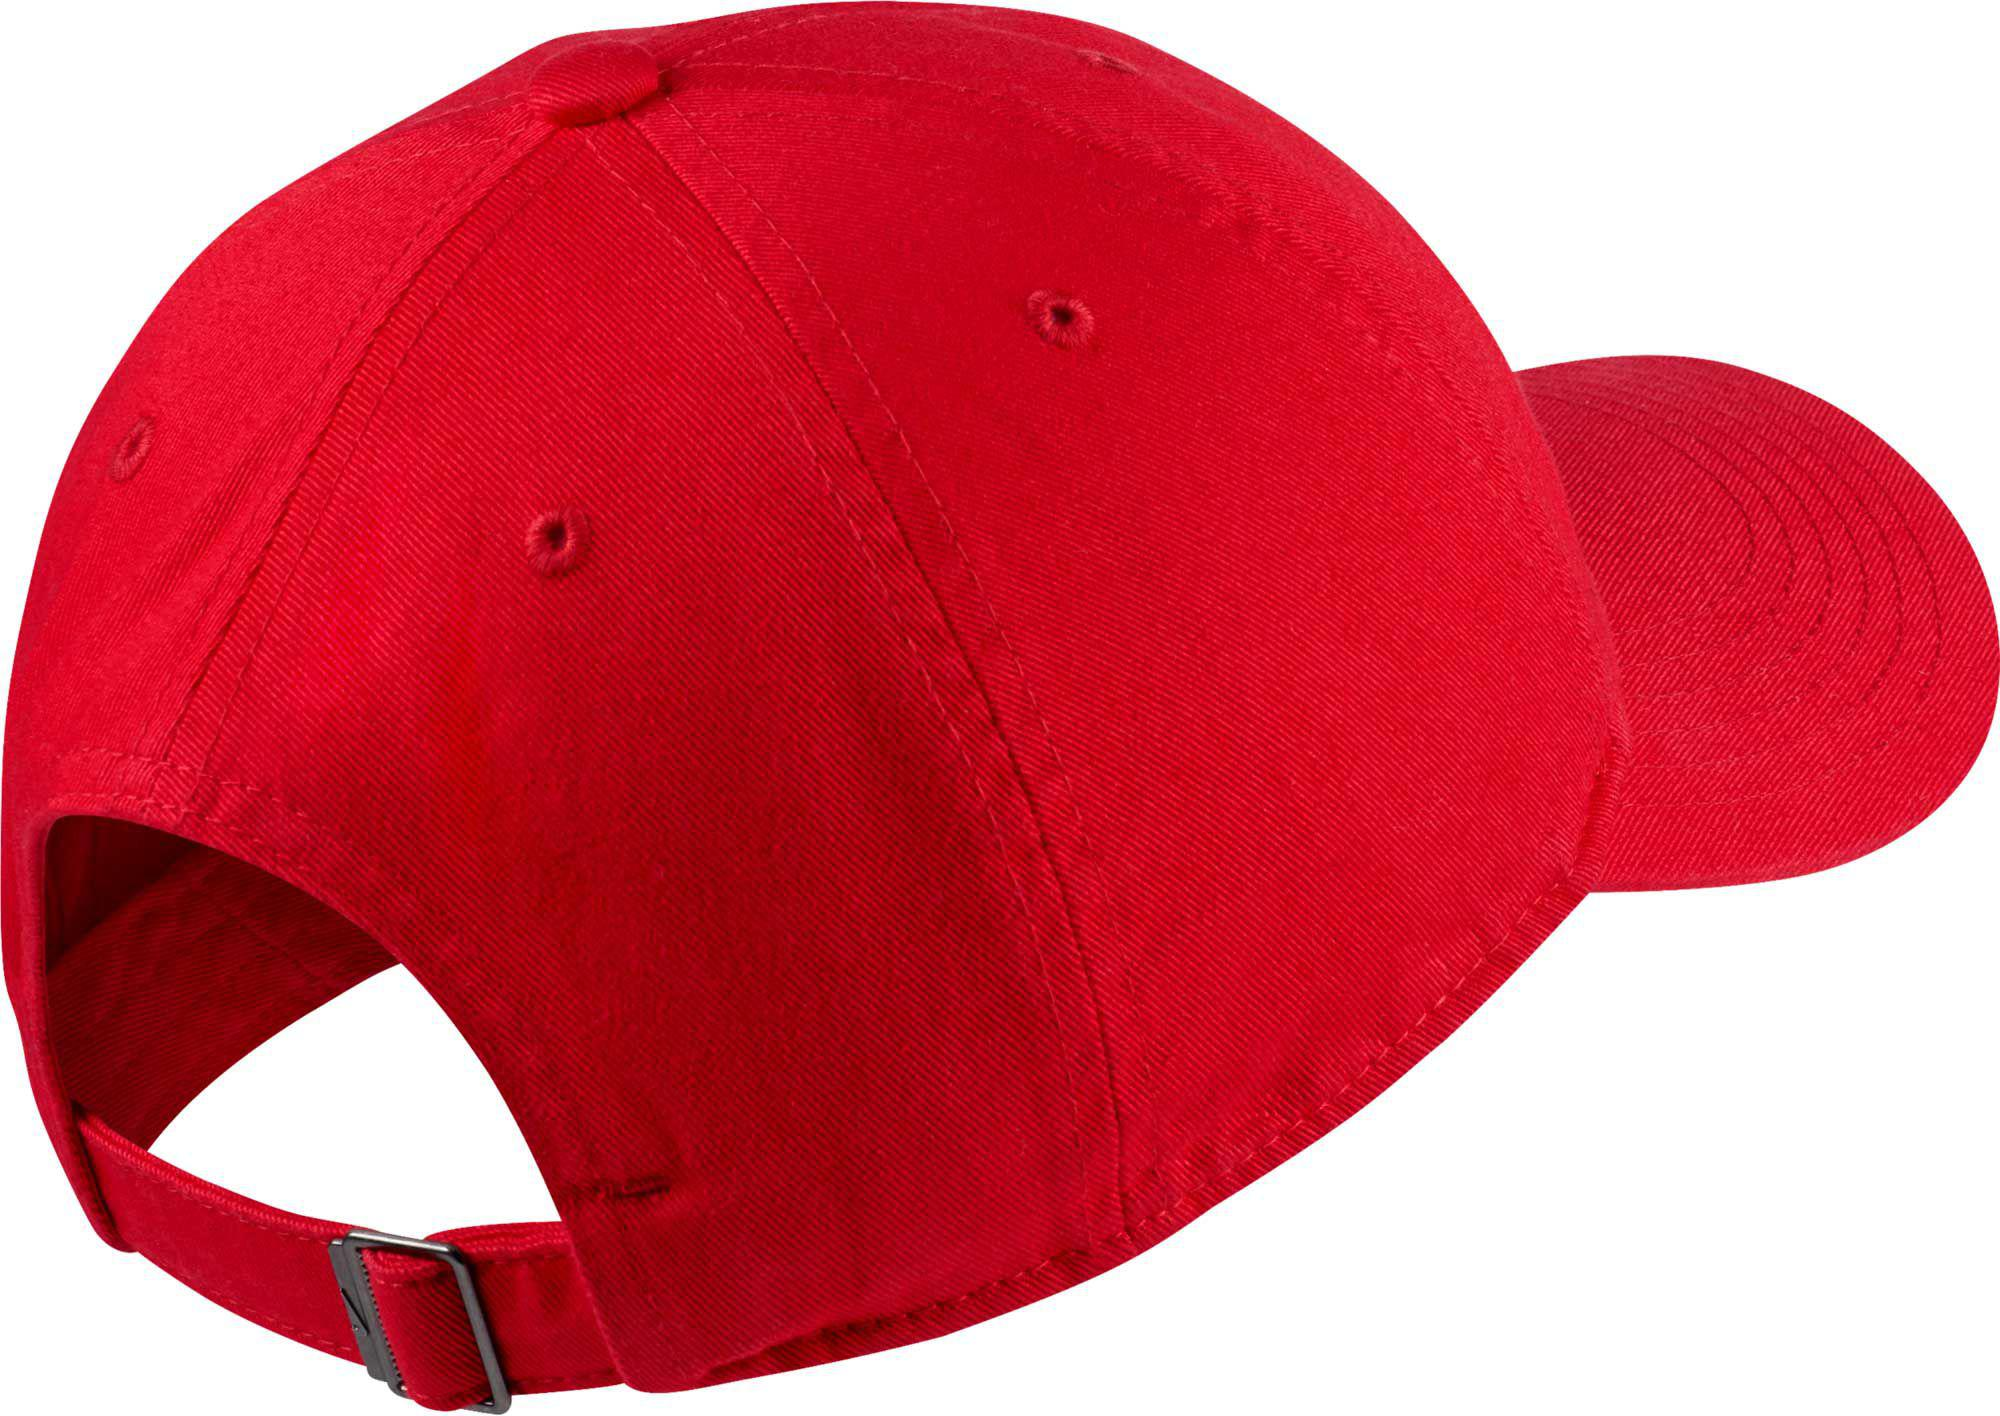 Nike - Red Oys  Heritage86 Futura Adjustable Hat for Men - Lyst. View  fullscreen 20d89217fa83